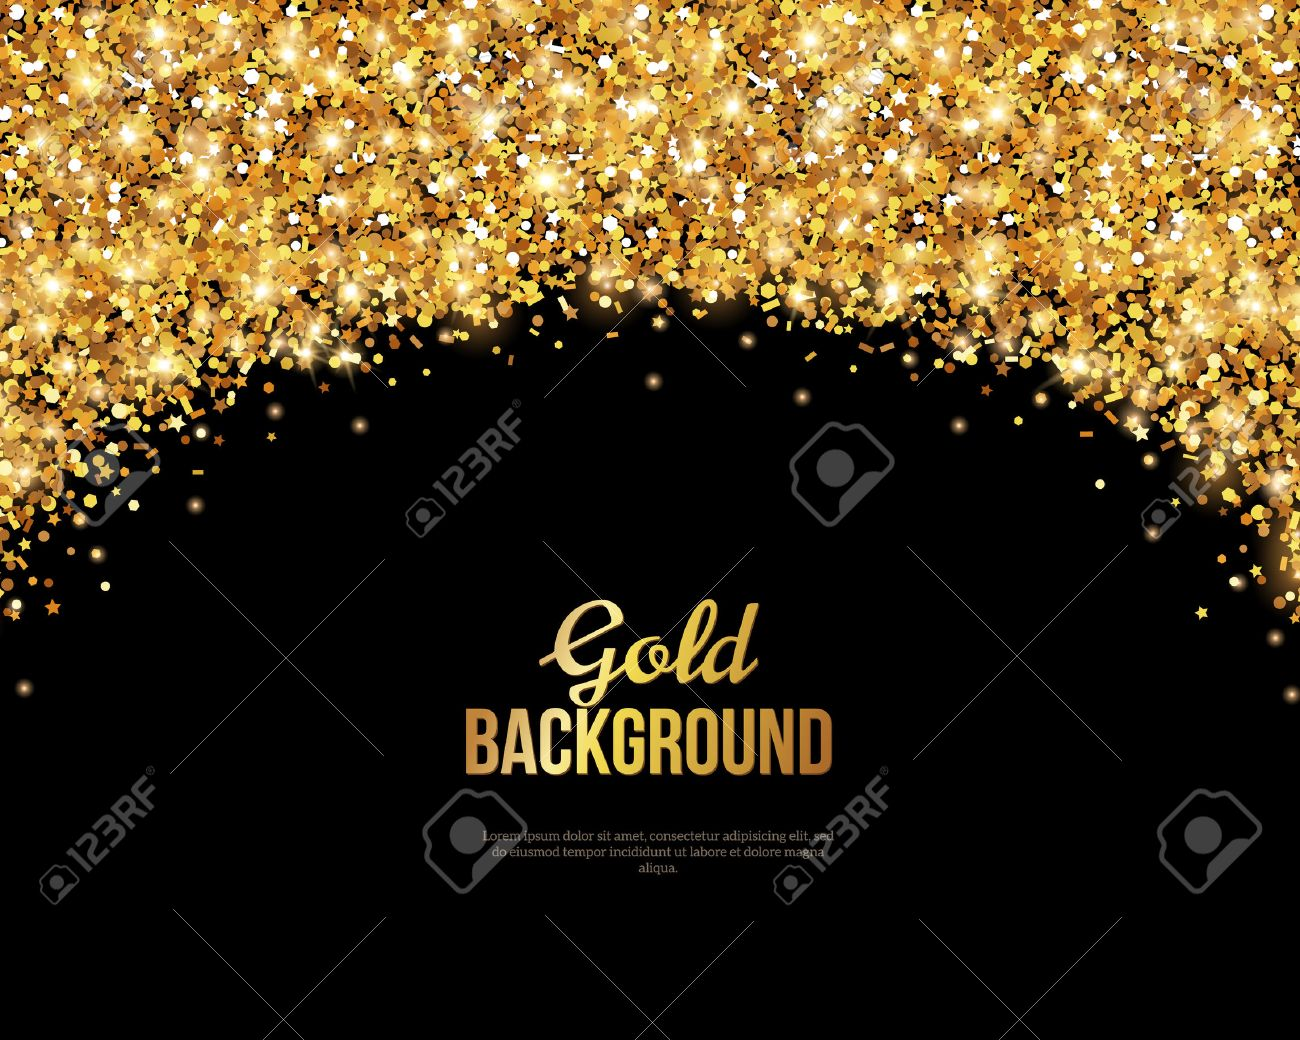 black and gold greeting card design golden dust illustration happy new year